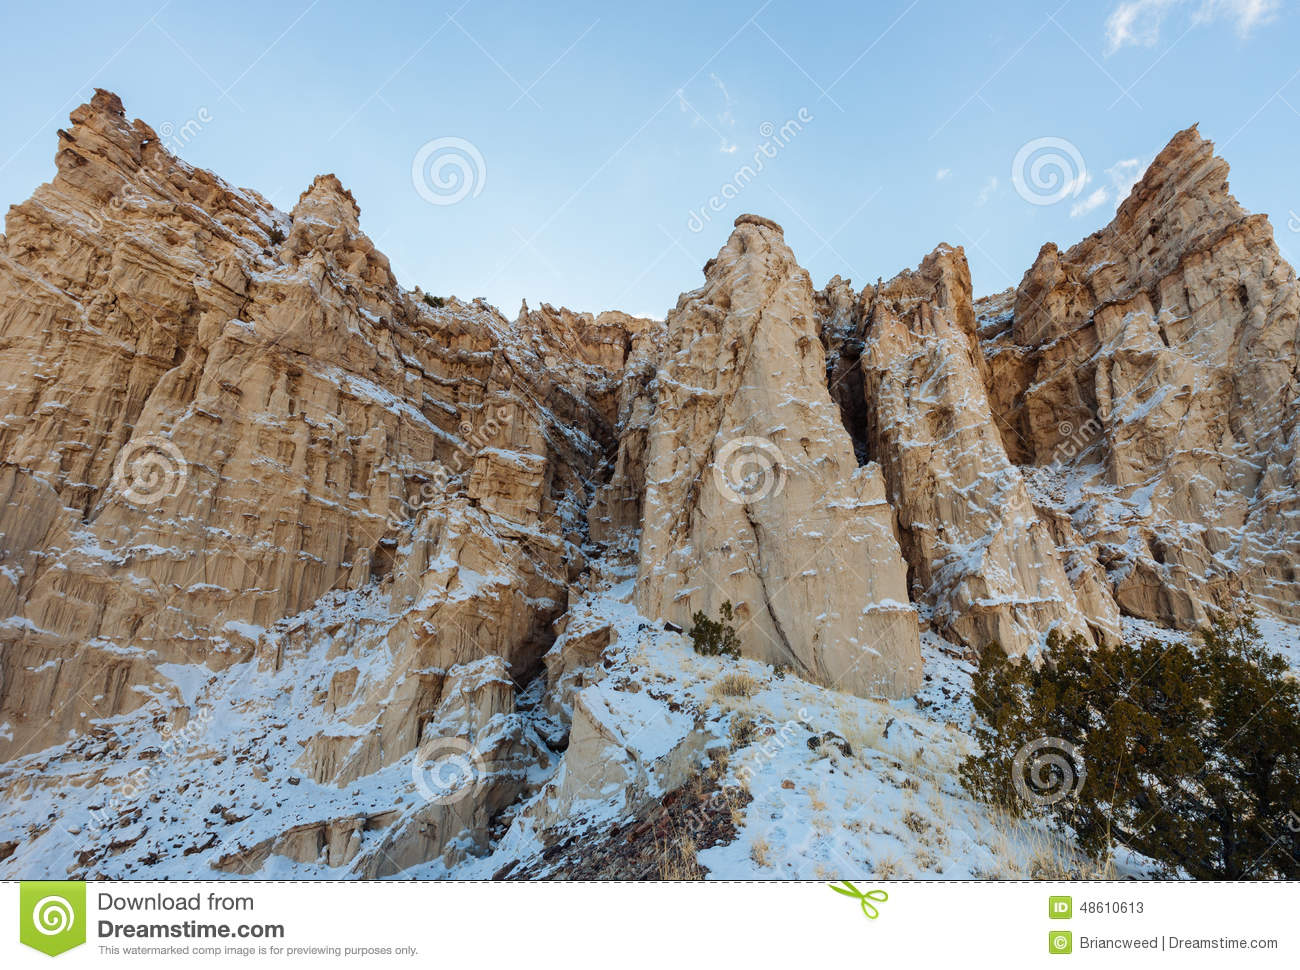 Dramatic Cliffs of New Mexico in Snow